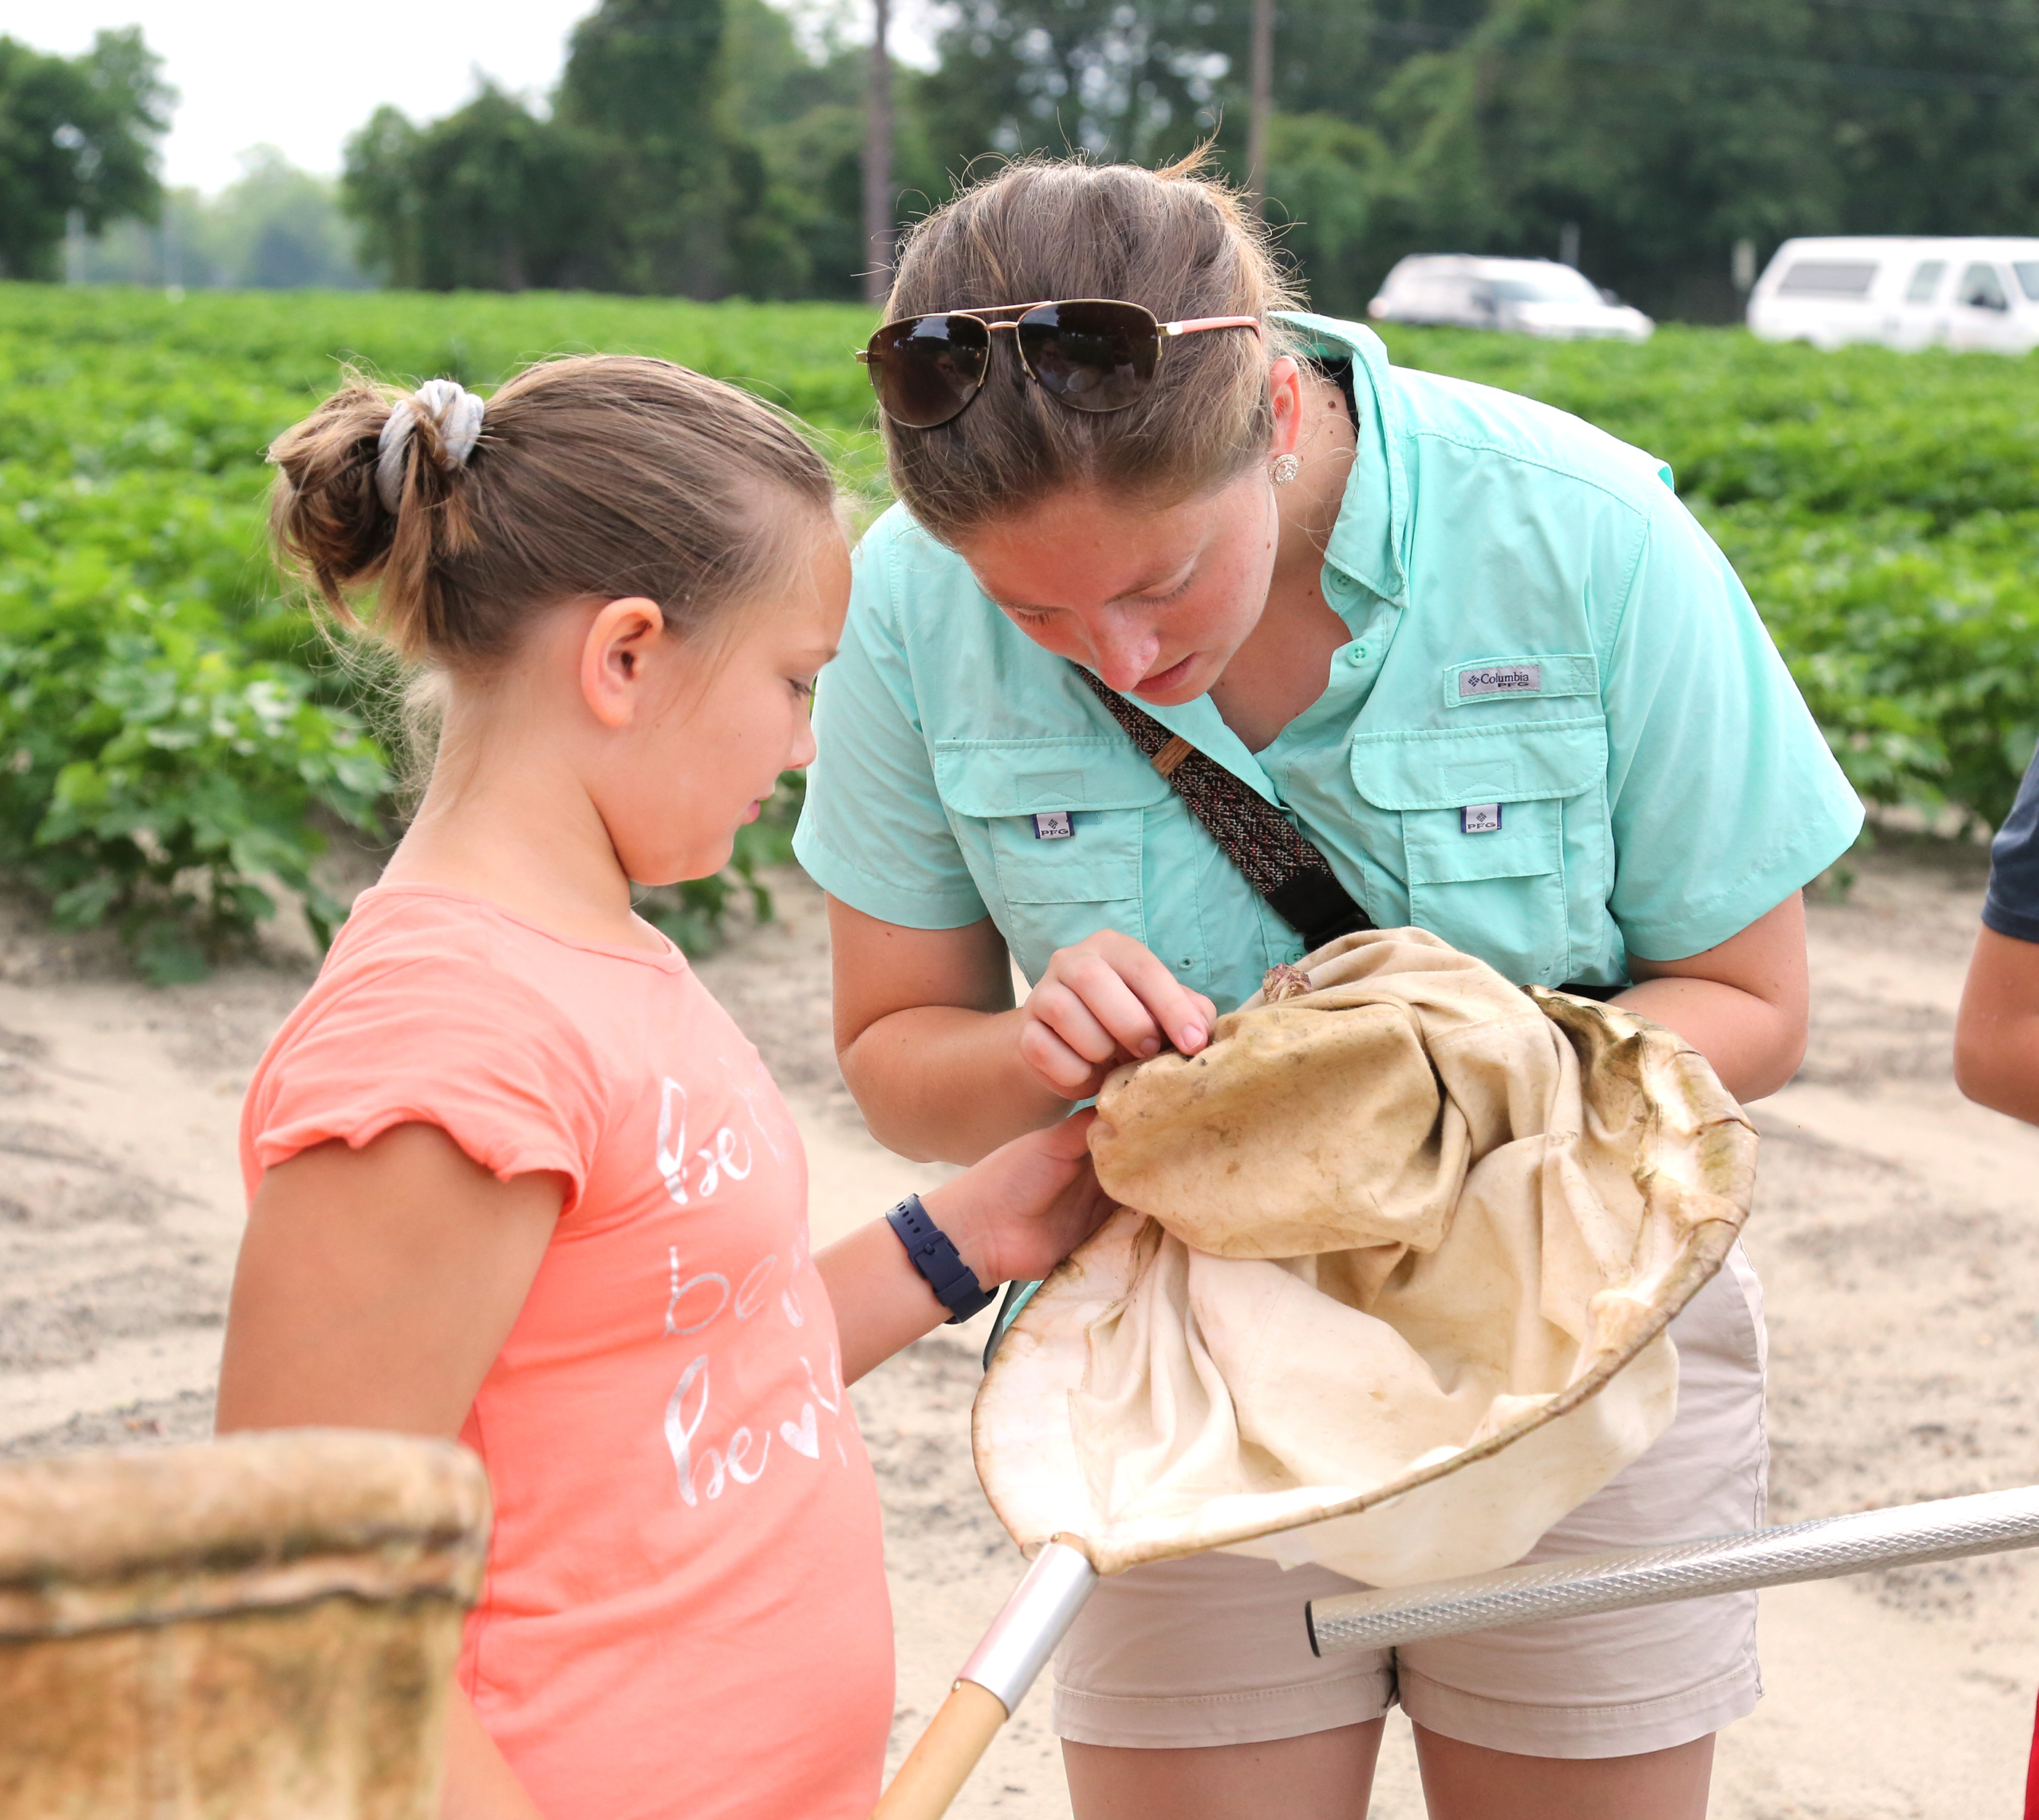 Crawford County ANR and 4-H agent Sarah Greer looks in a sweep net to see if her 4-H student caught any insects.